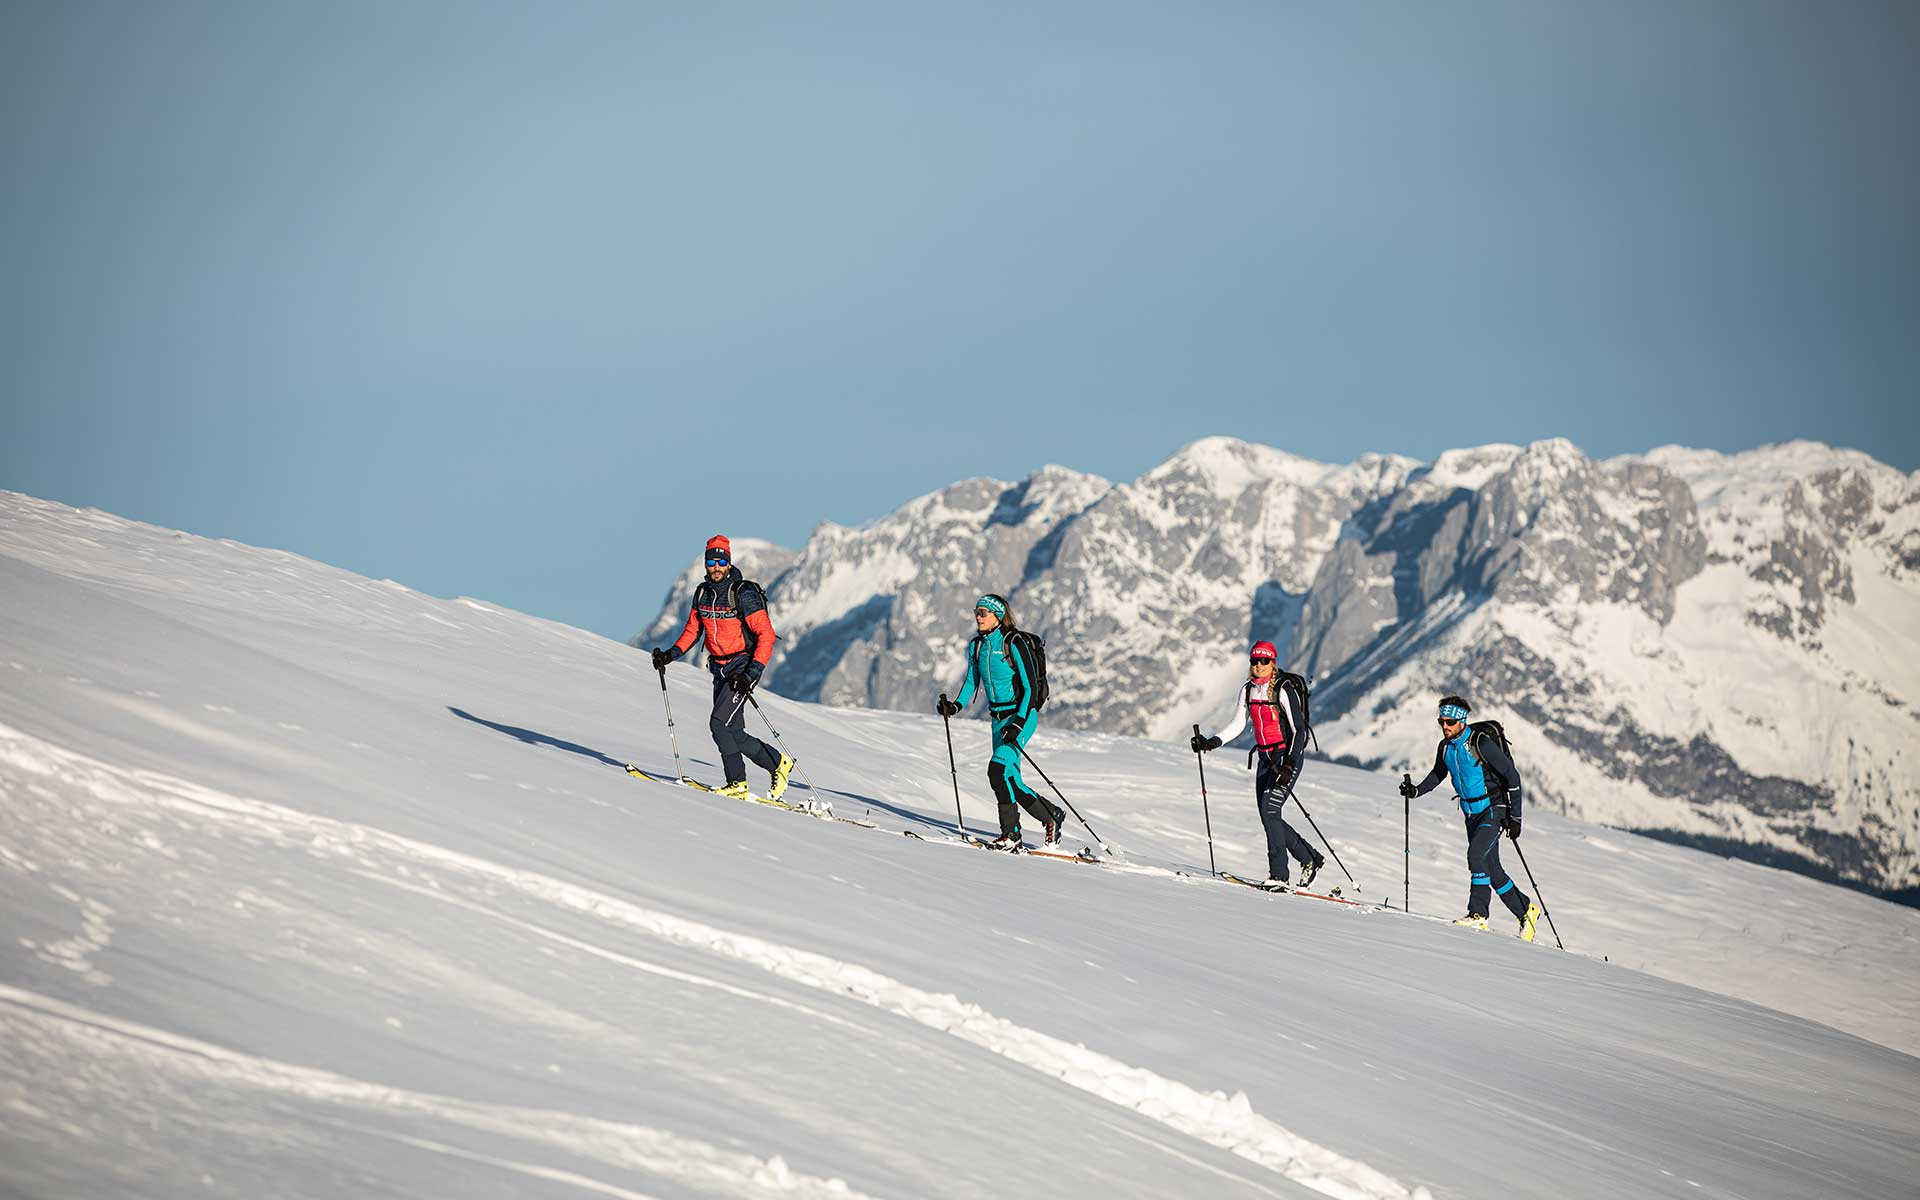 Wintersport bei Intersport Pittl